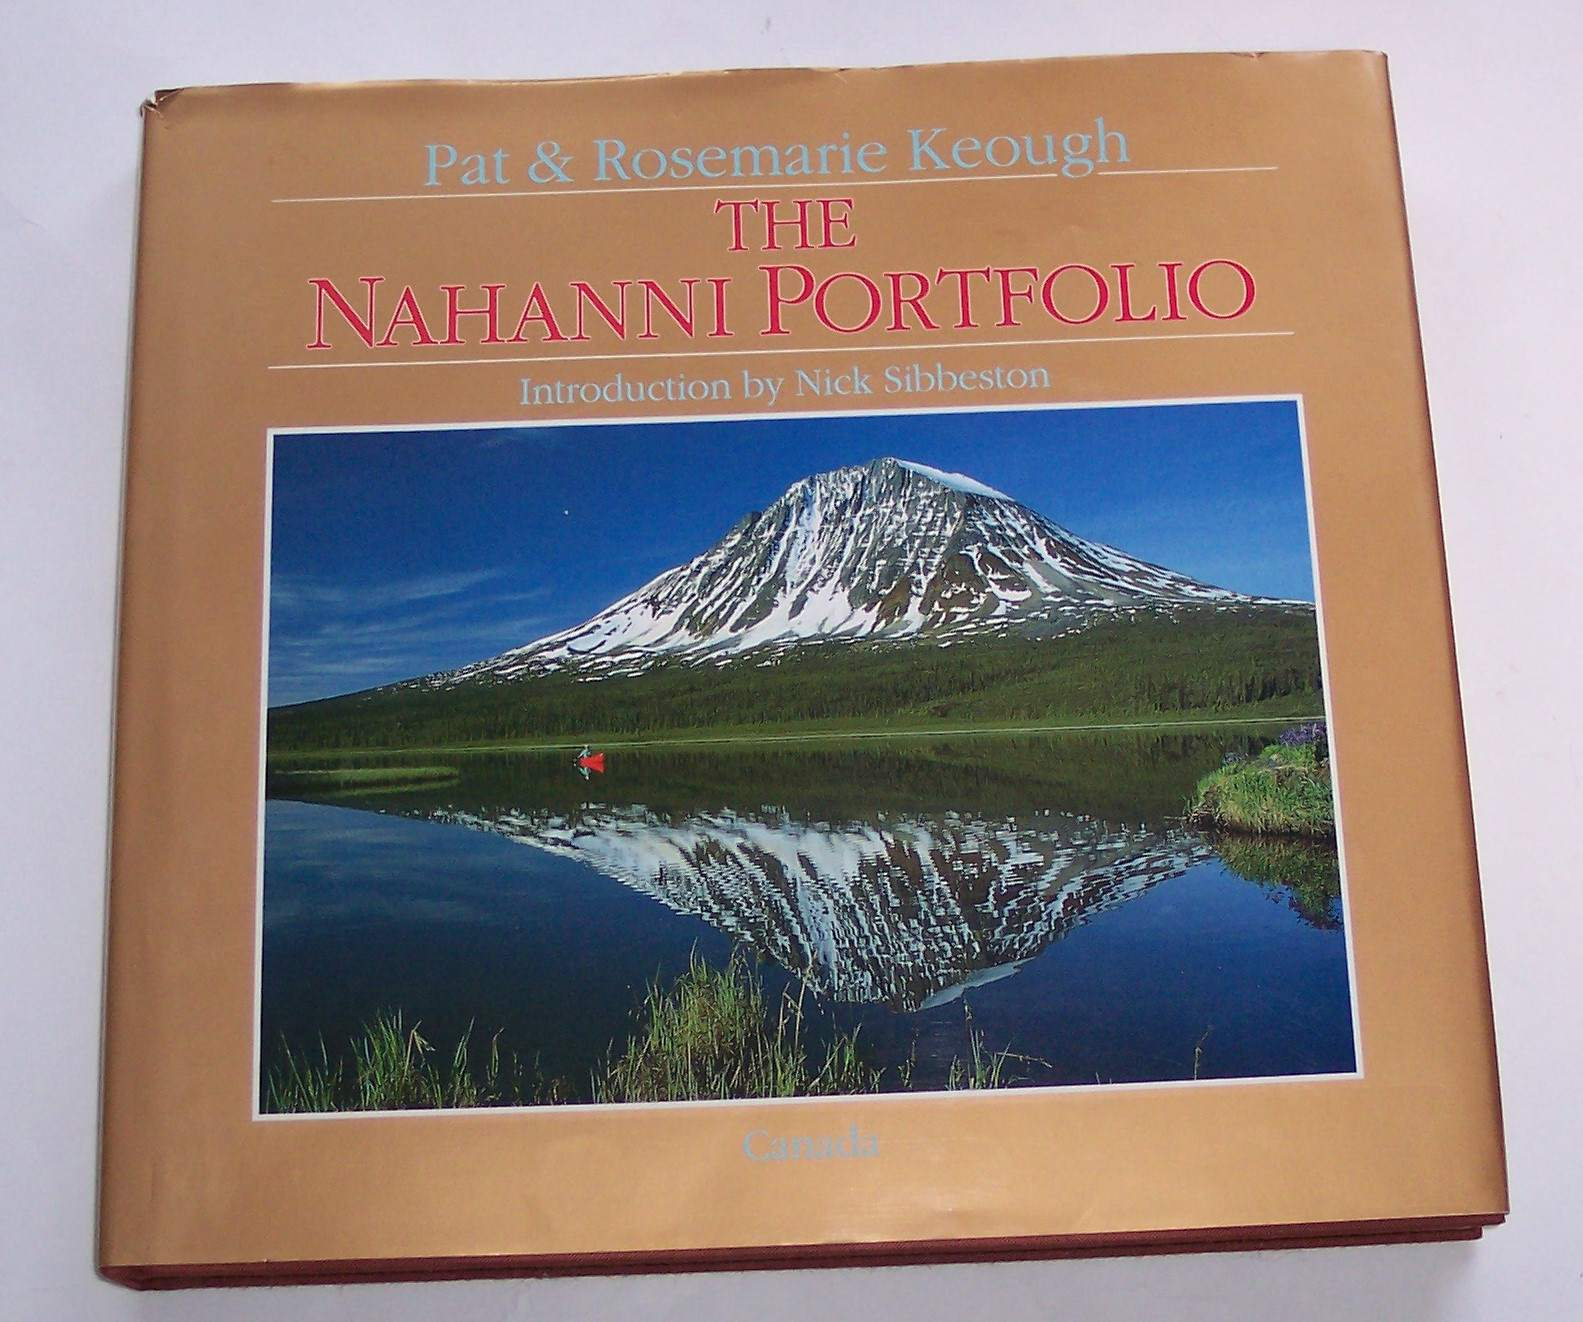 The Nahanni Portfolio by Pat & Rosemarie Keough